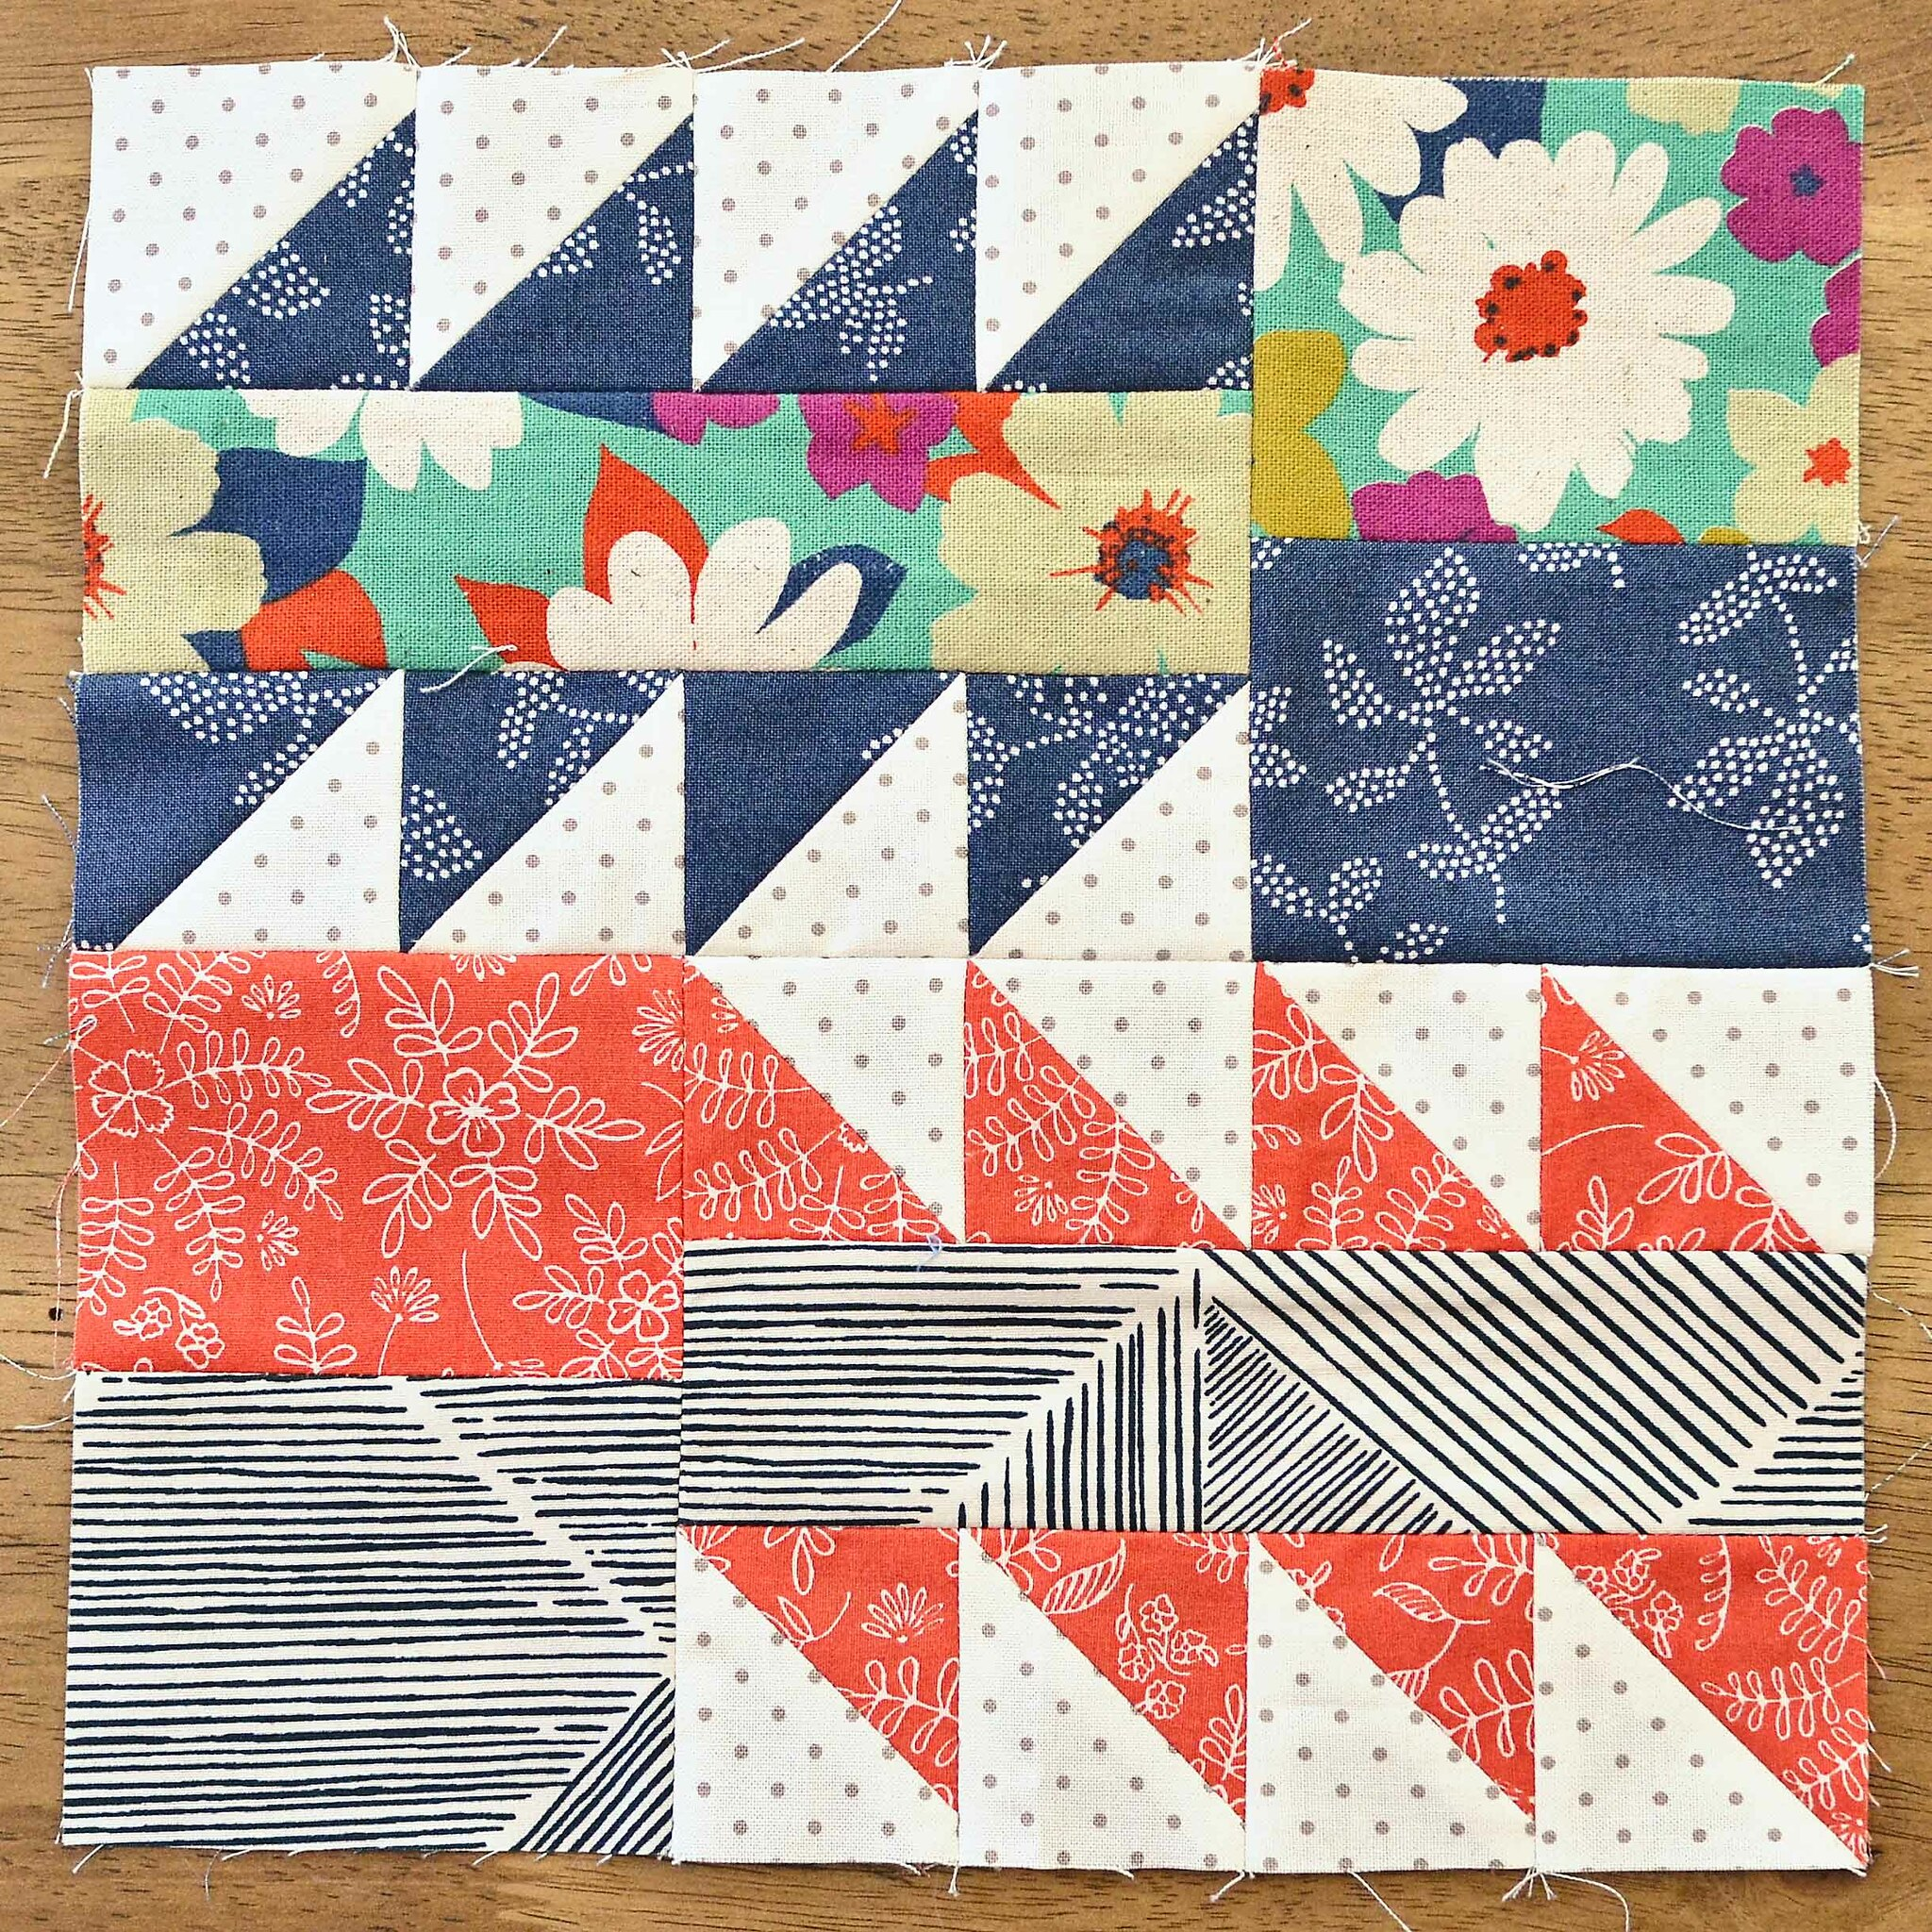 The Fussy Cut Sampler QAL Block 25